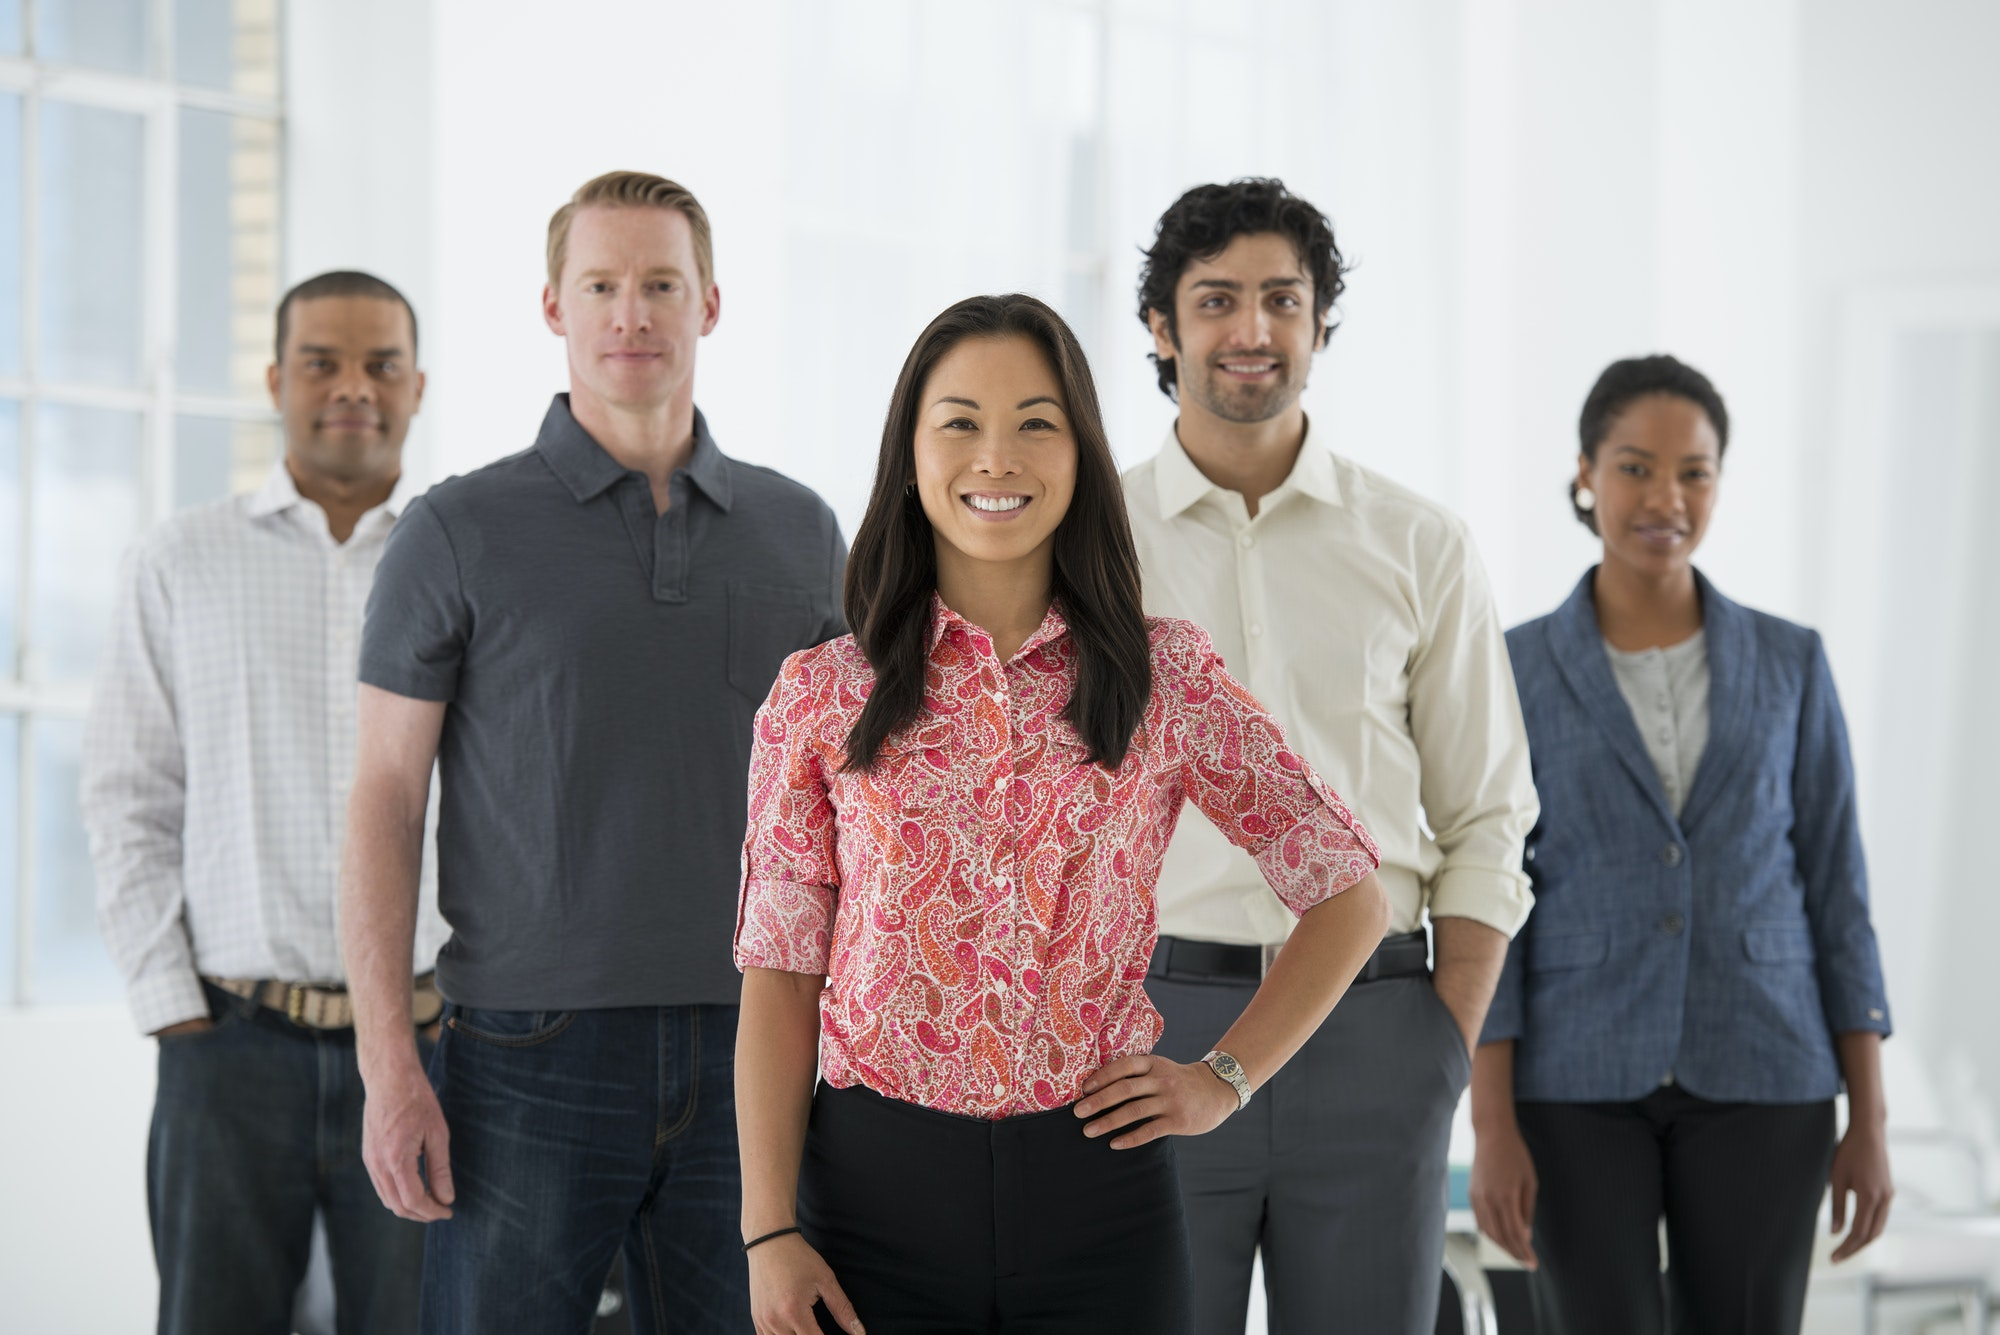 Parkwijck an-office-in-the-city-business-team-multi-ethnic-group-men-and-women-standing-together-in-a-group- Homepage